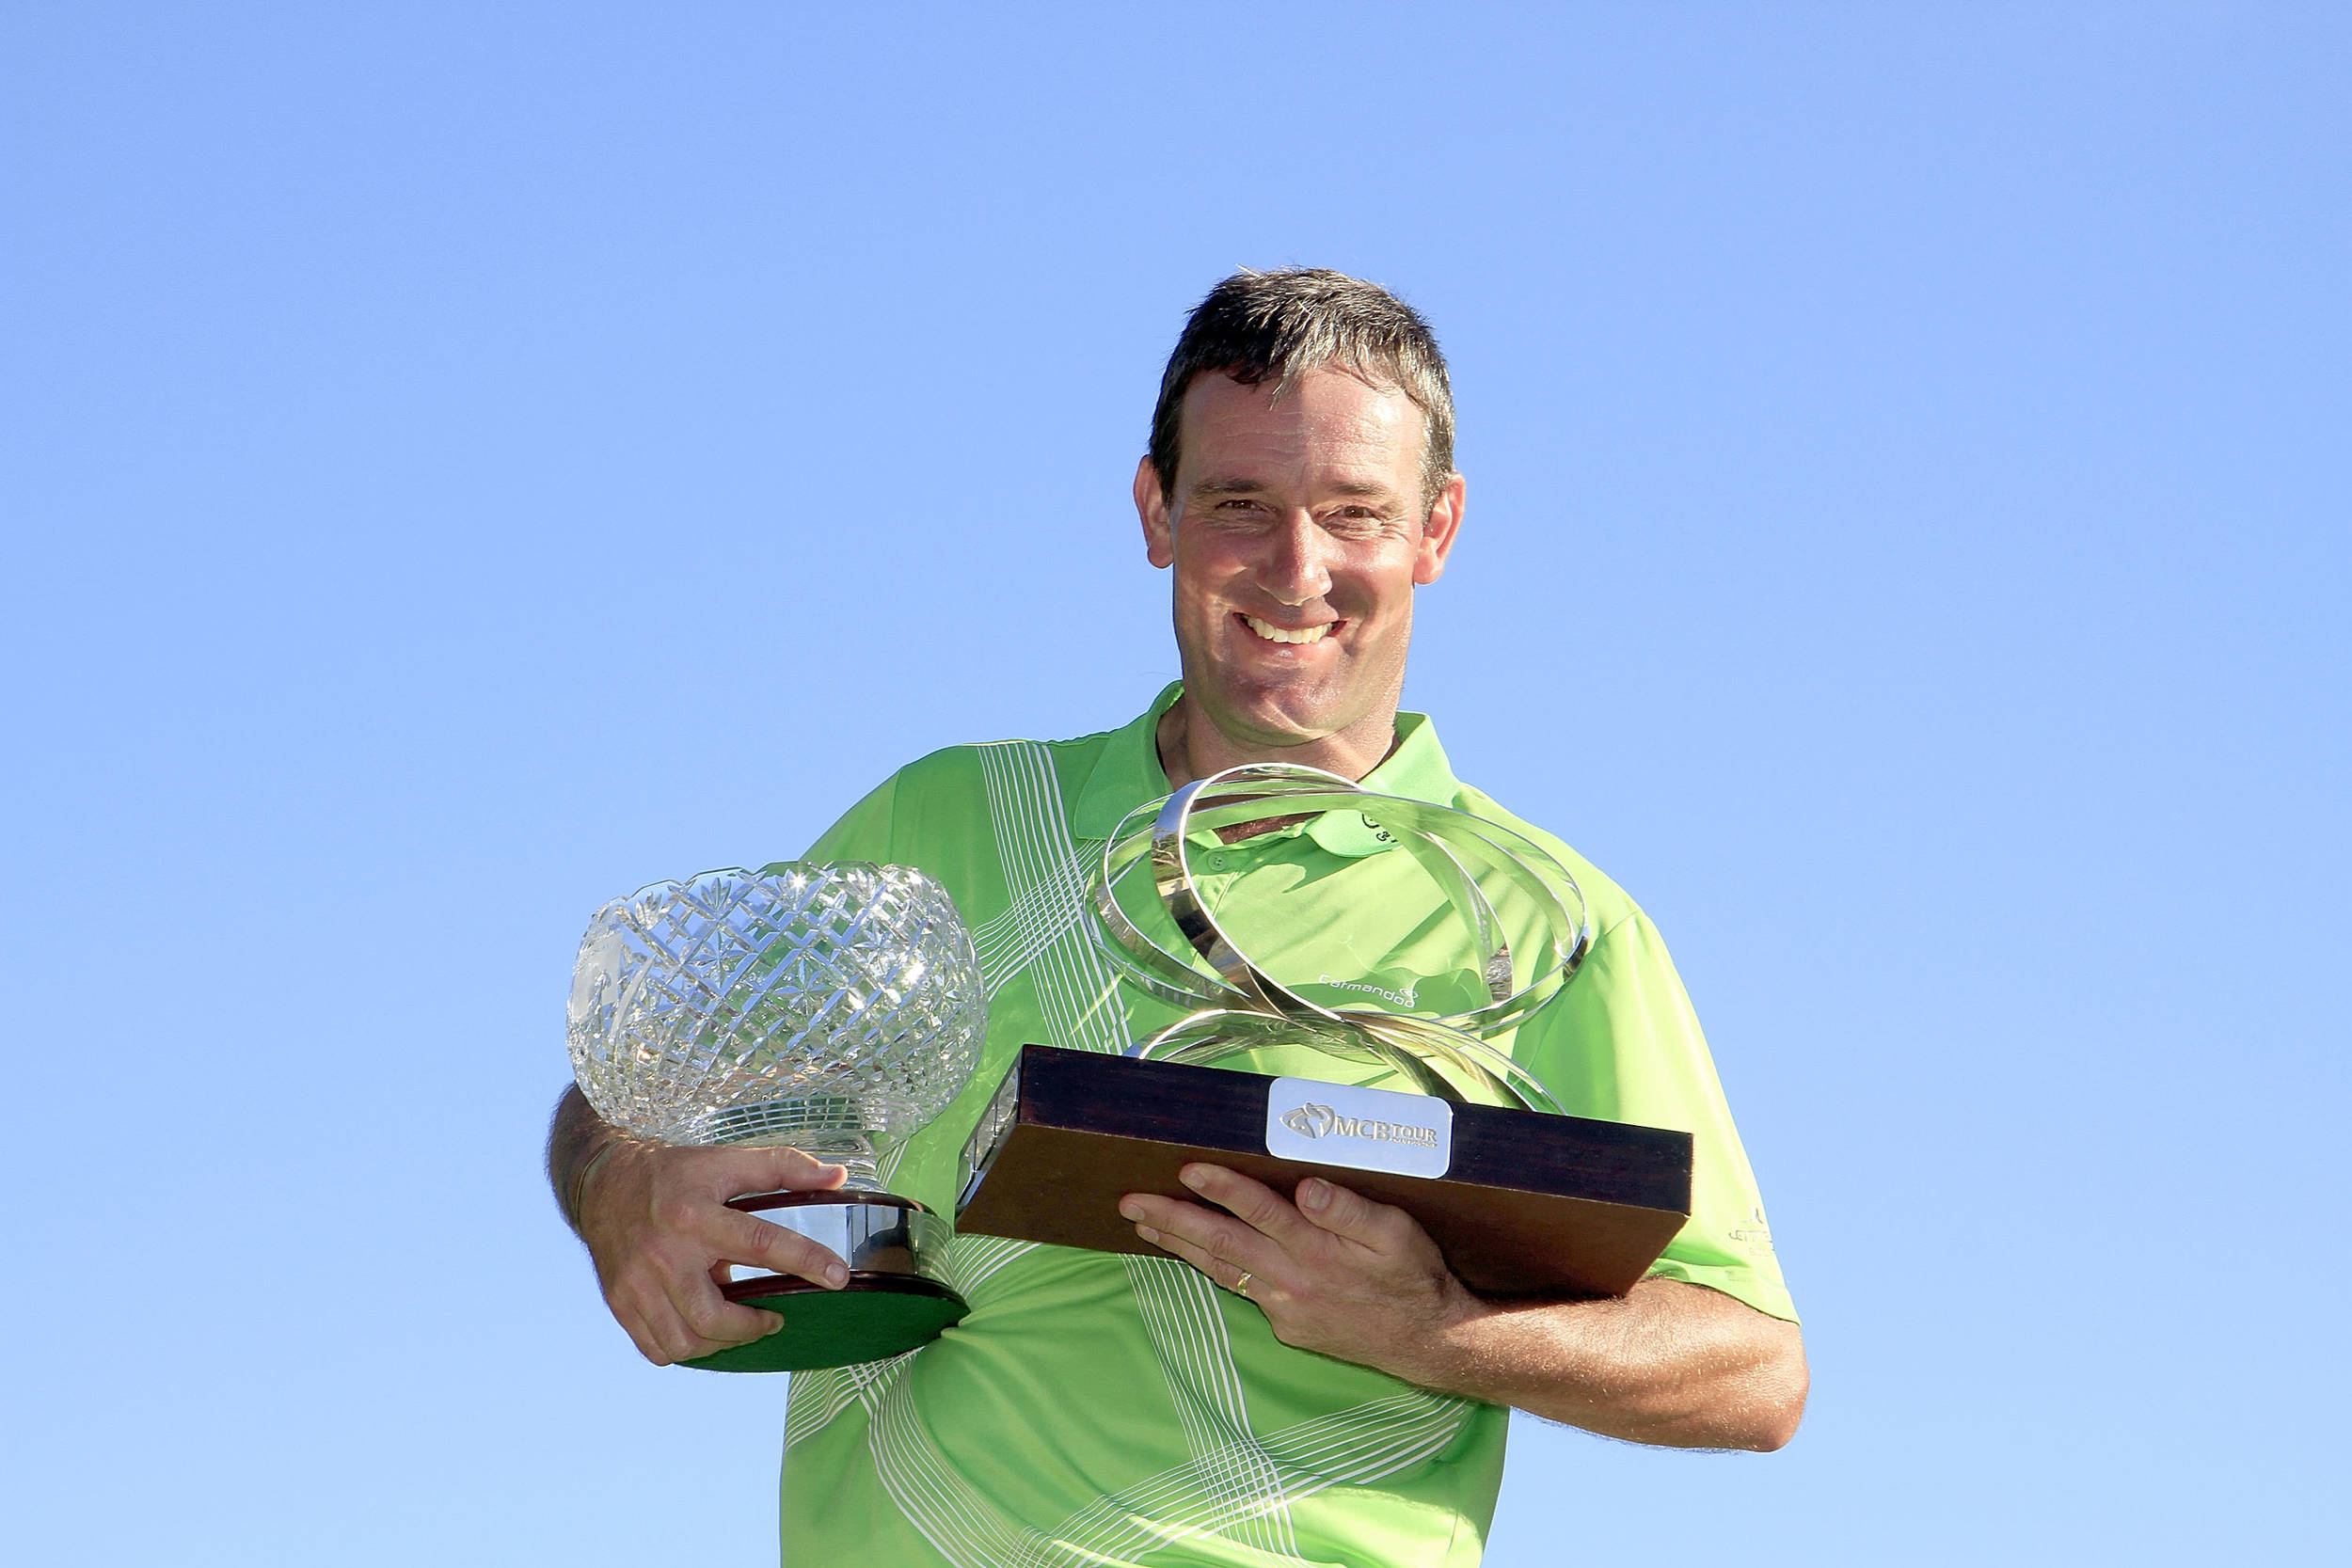 Paul Wesselingh with the MCB Tour Championship and the John Jacobs trophies. © Getty Images